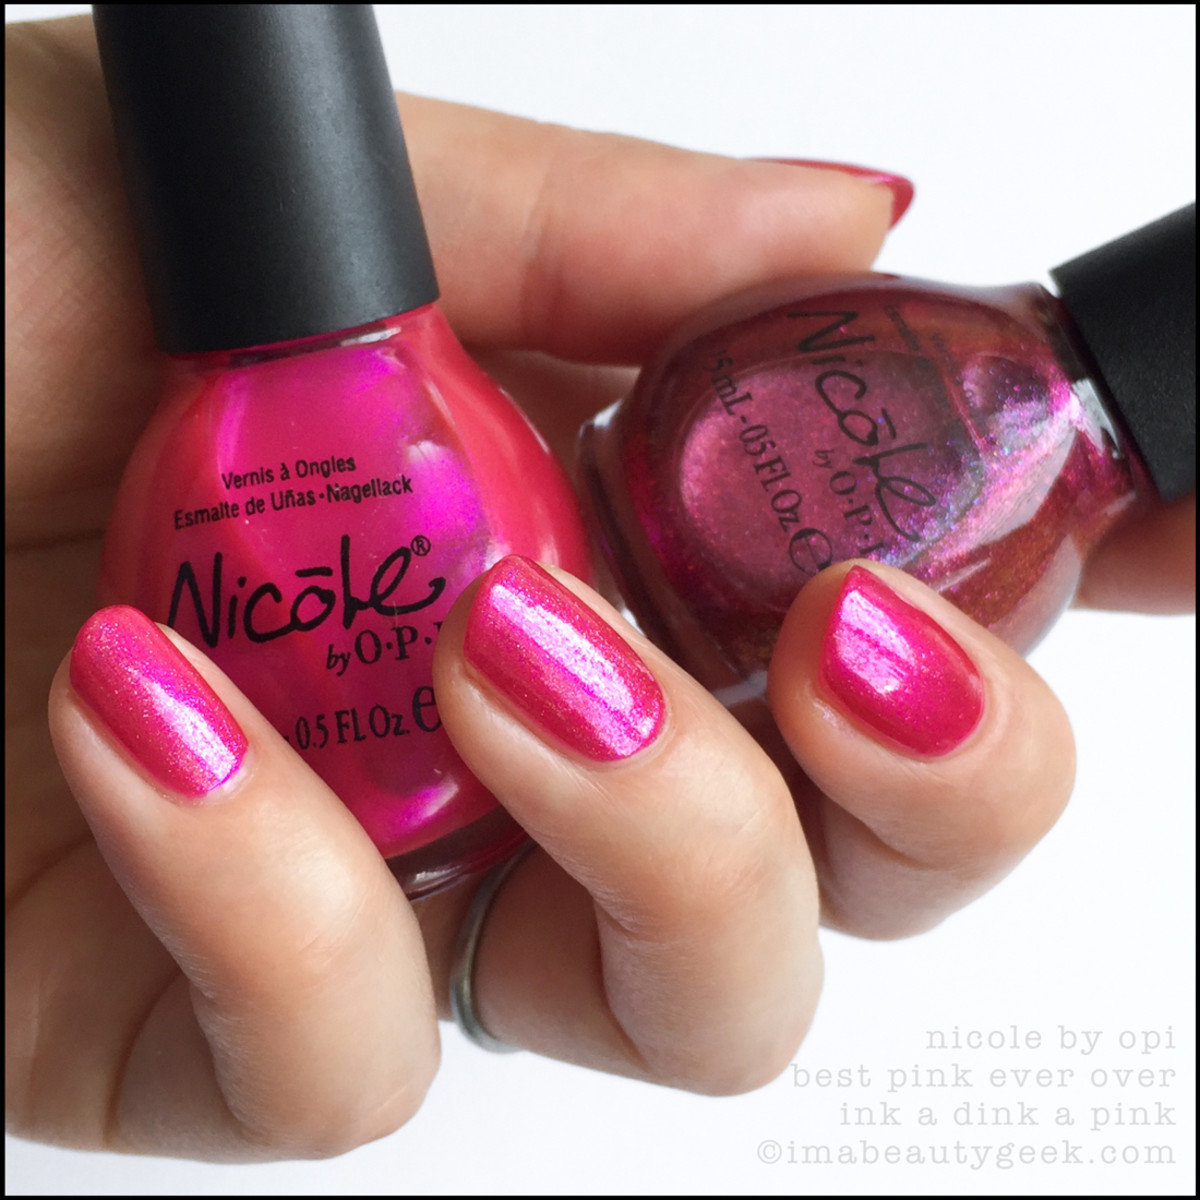 Nicole by OPI Best Pink Ever with Ink a Dink a Pink_Nicole by Opi Swatches